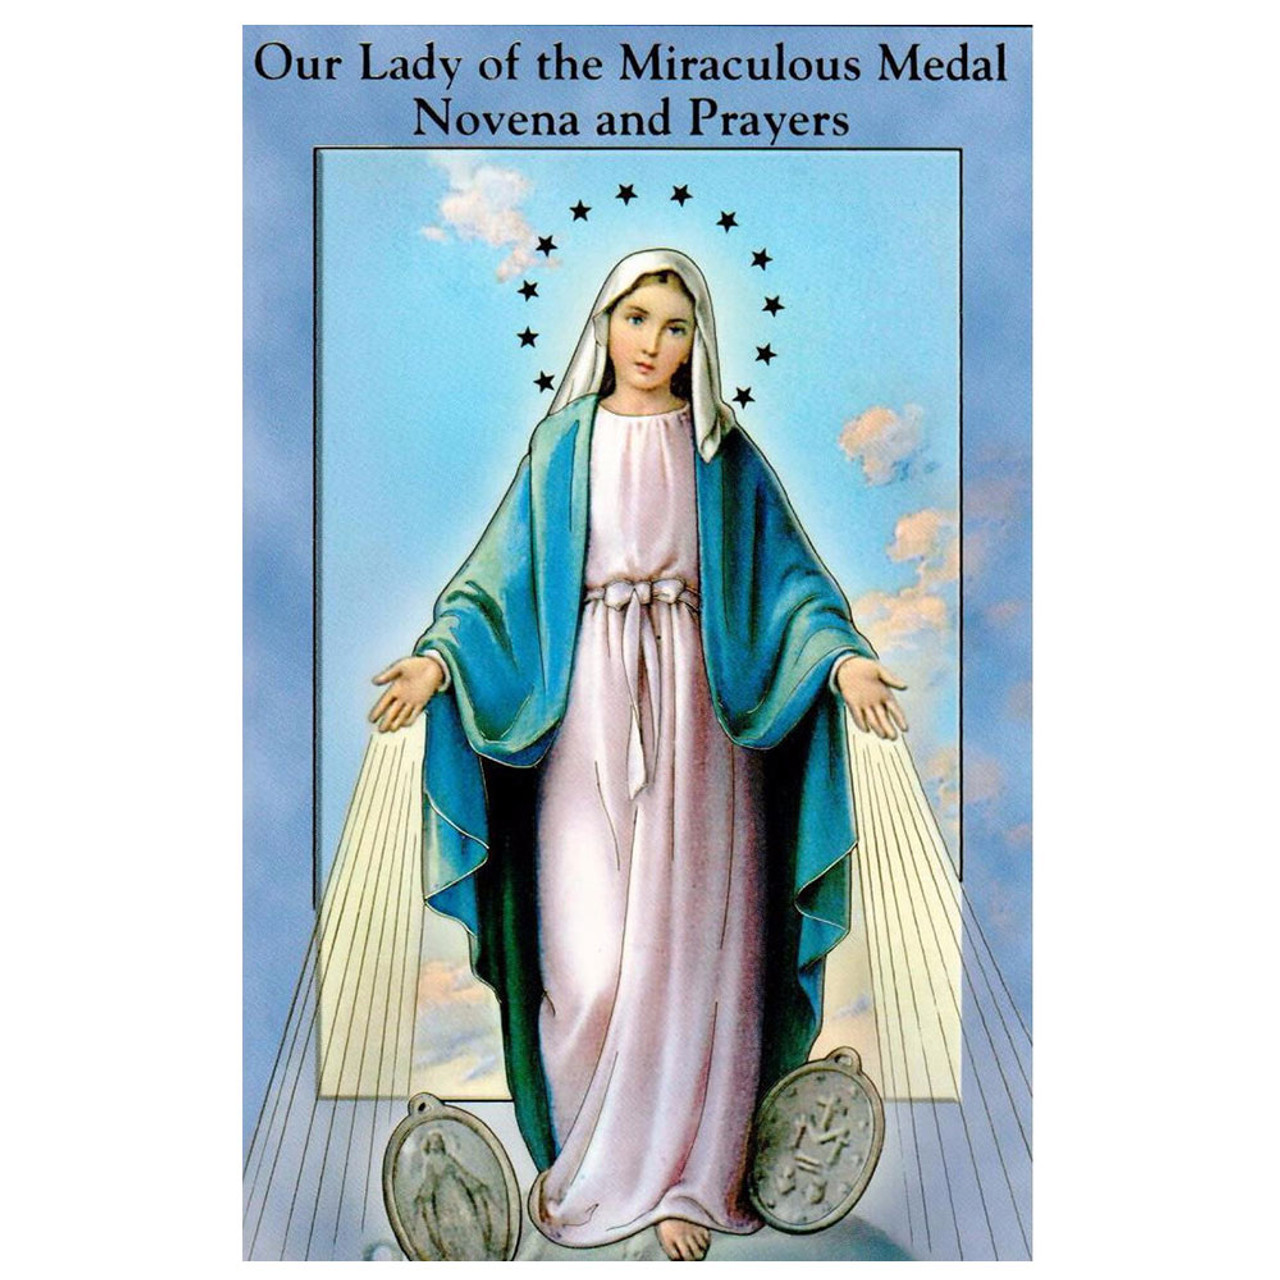 Our Lady of the Miraculous Medal Novena & Prayers